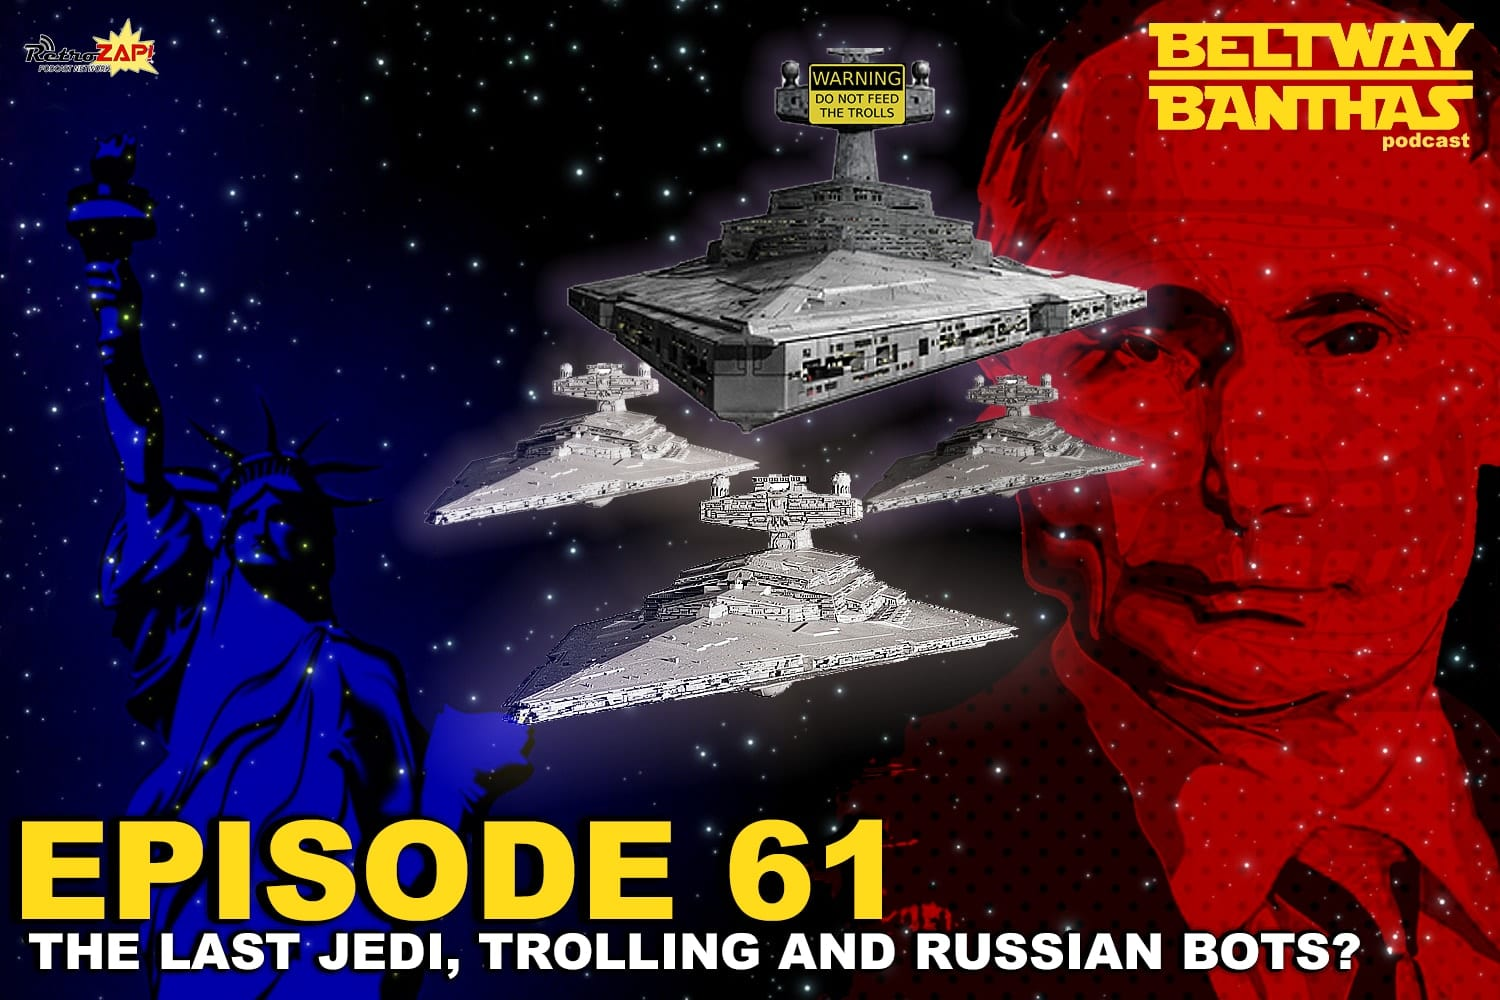 Beltway Banthas #61: Revenge of The Russian Bots